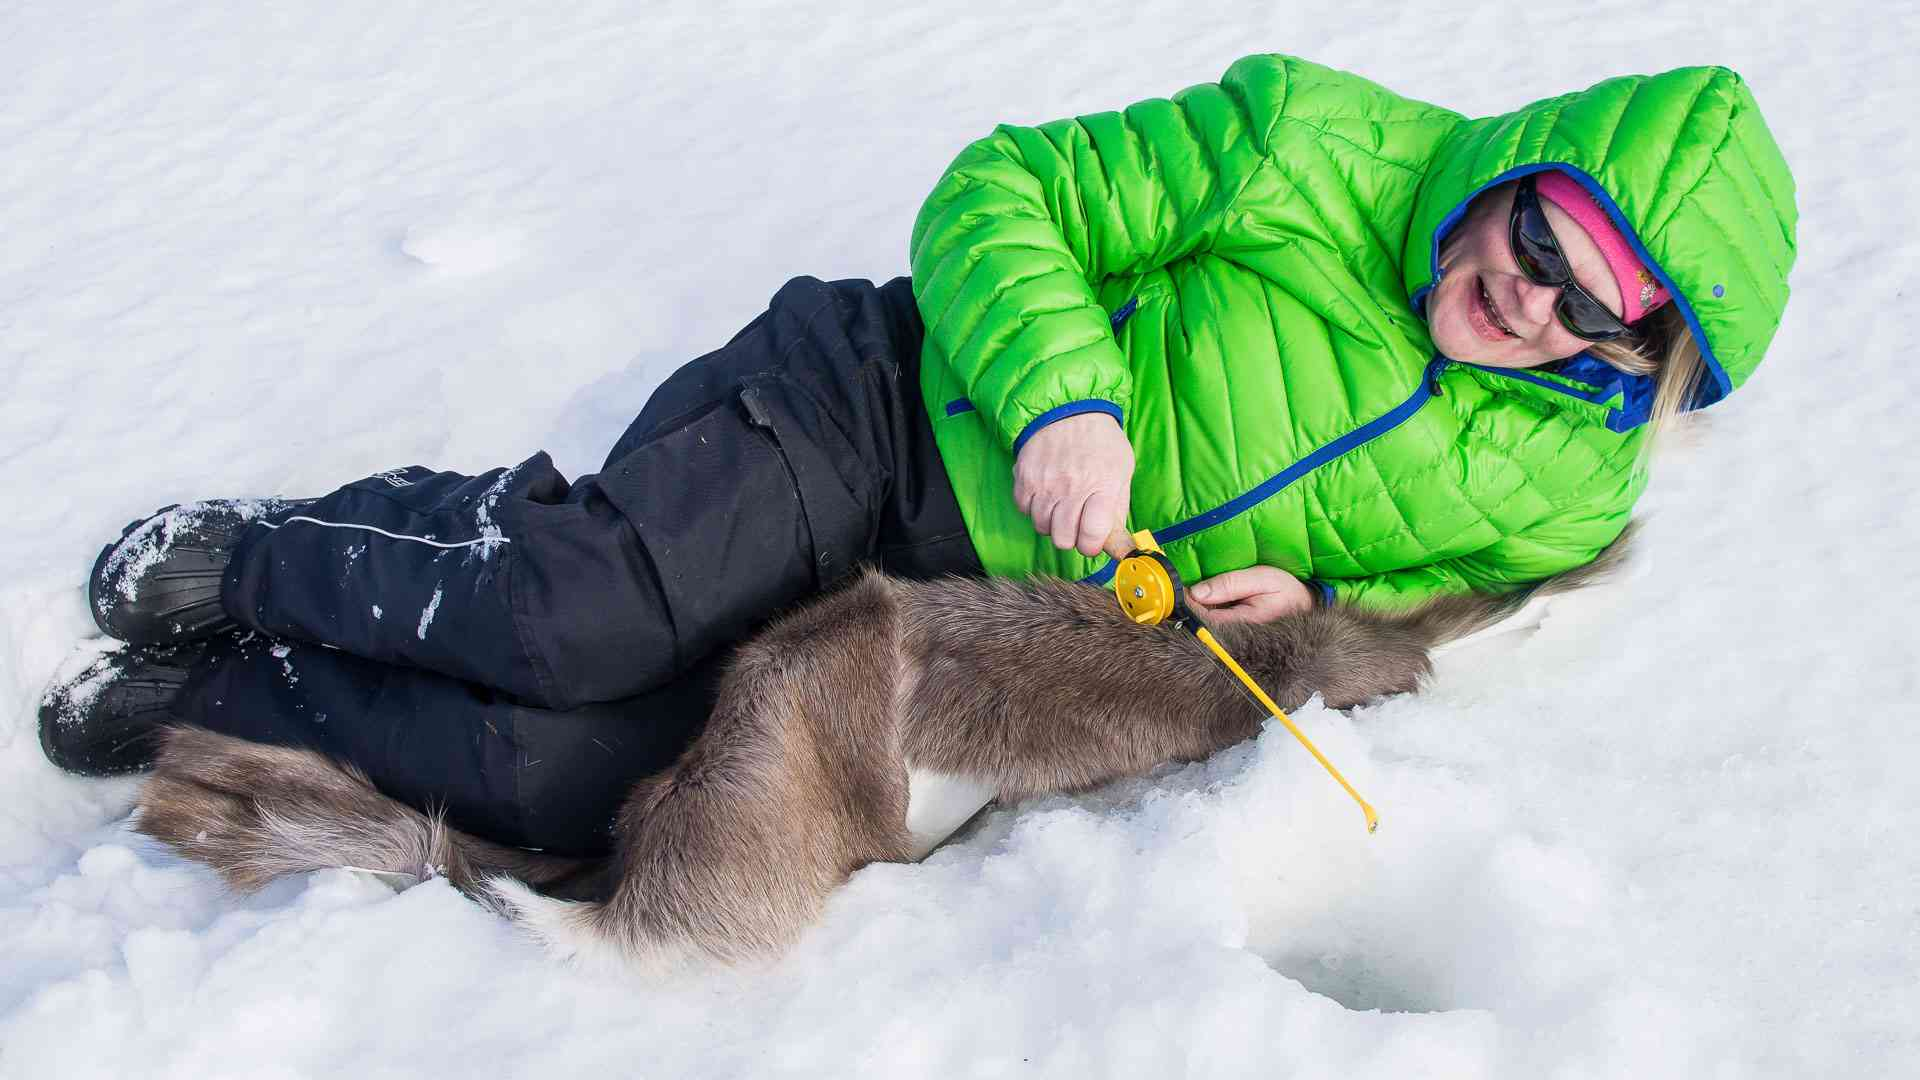 Ice Fishing Experience, Levi, Finland by Wild Nordic Finland